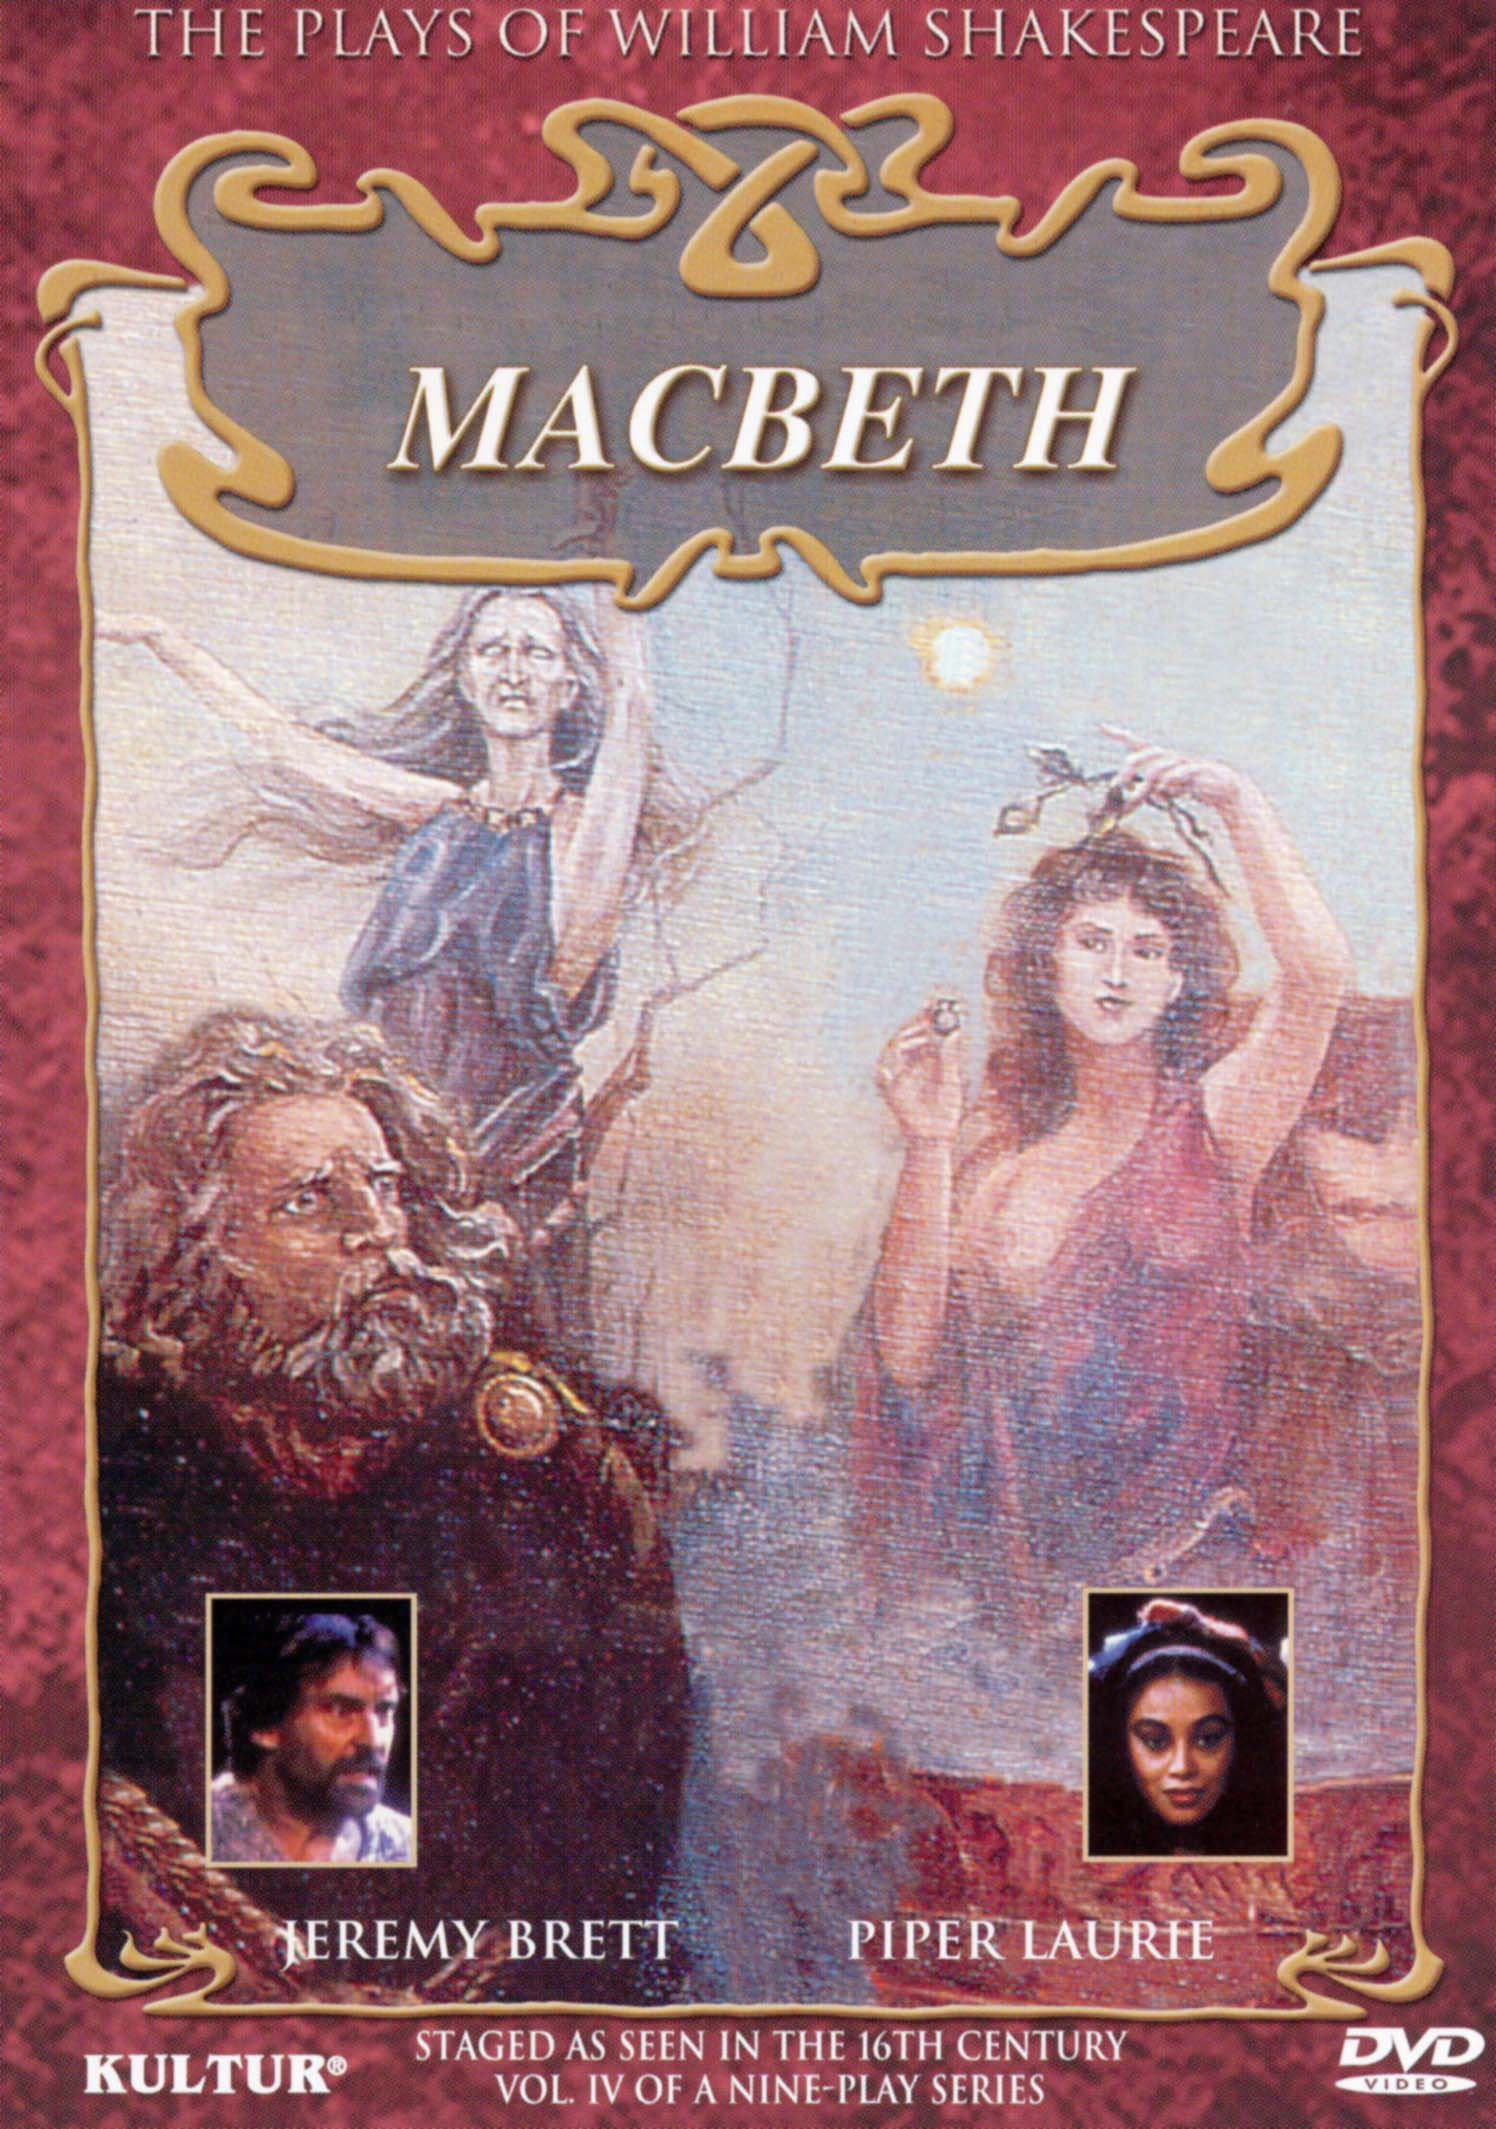 an overview of the nobility in macbeth a play by william shakespeare Macbeth by william shakespeare  ¨ the witches in macbeth 14 macbeth: criticism ¨ overview  at the beginning of the play, macbeth.